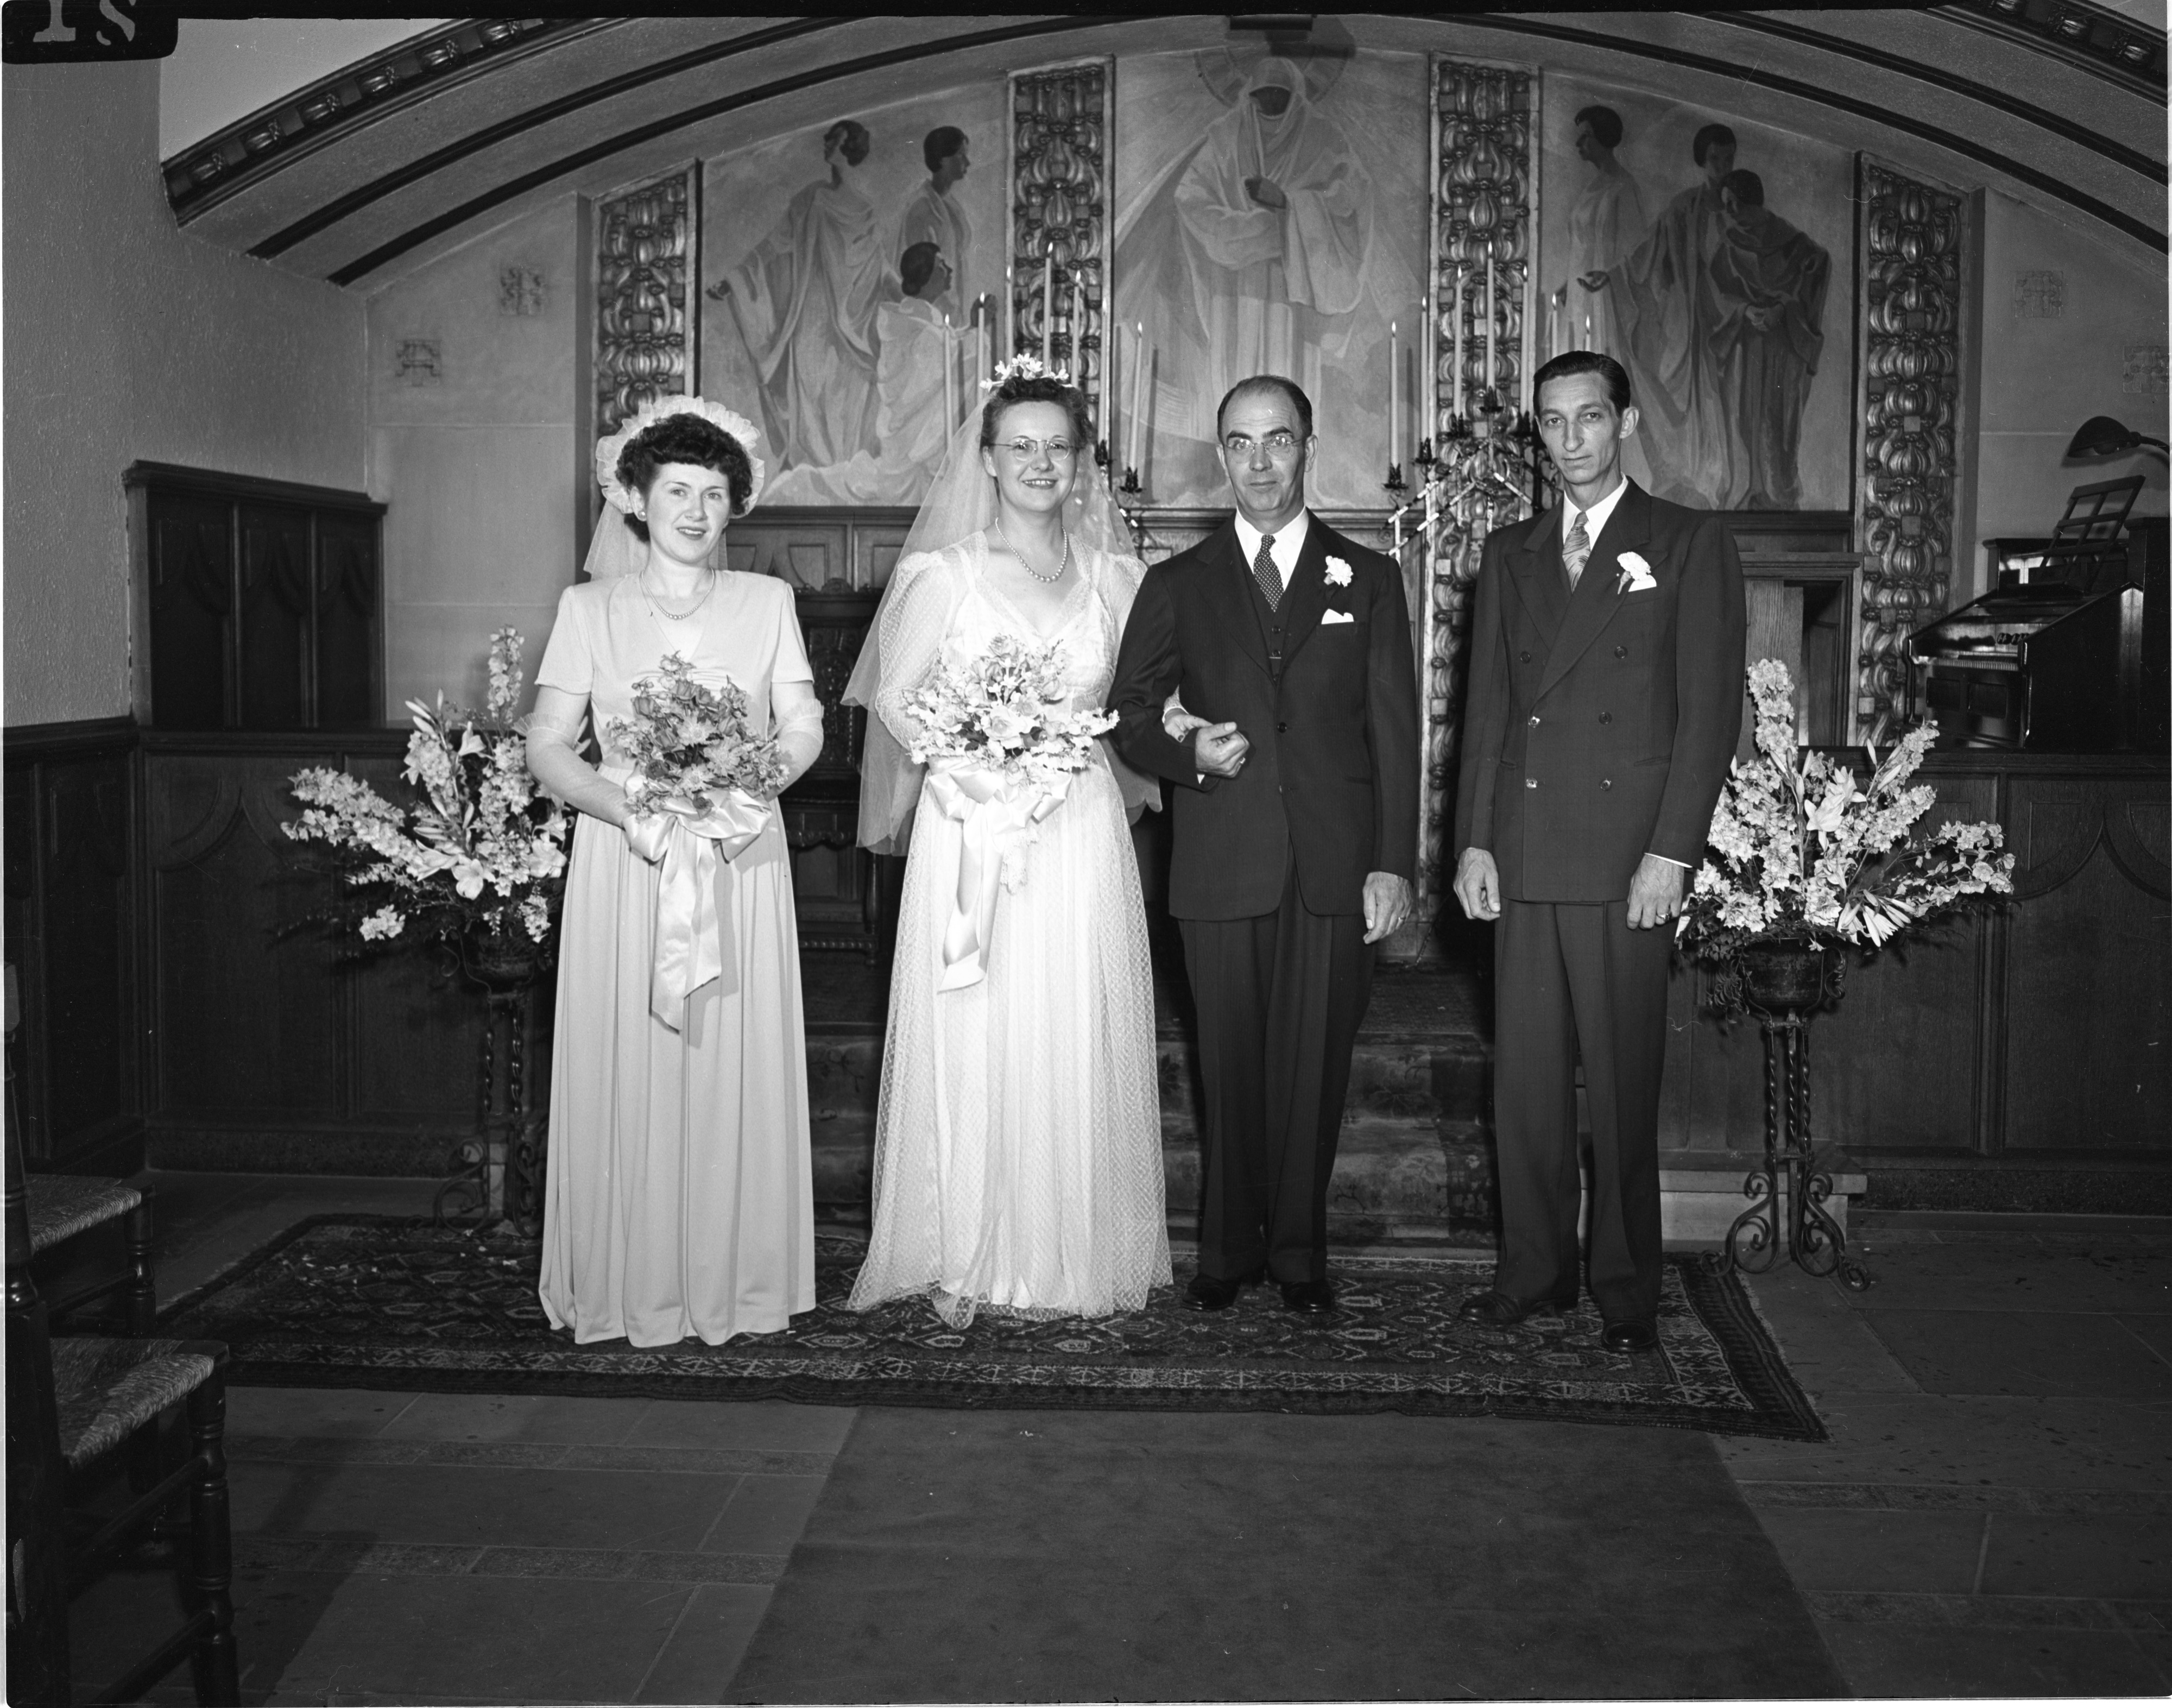 Hoffstetter Youd Wedding At The Michigan League Chapel